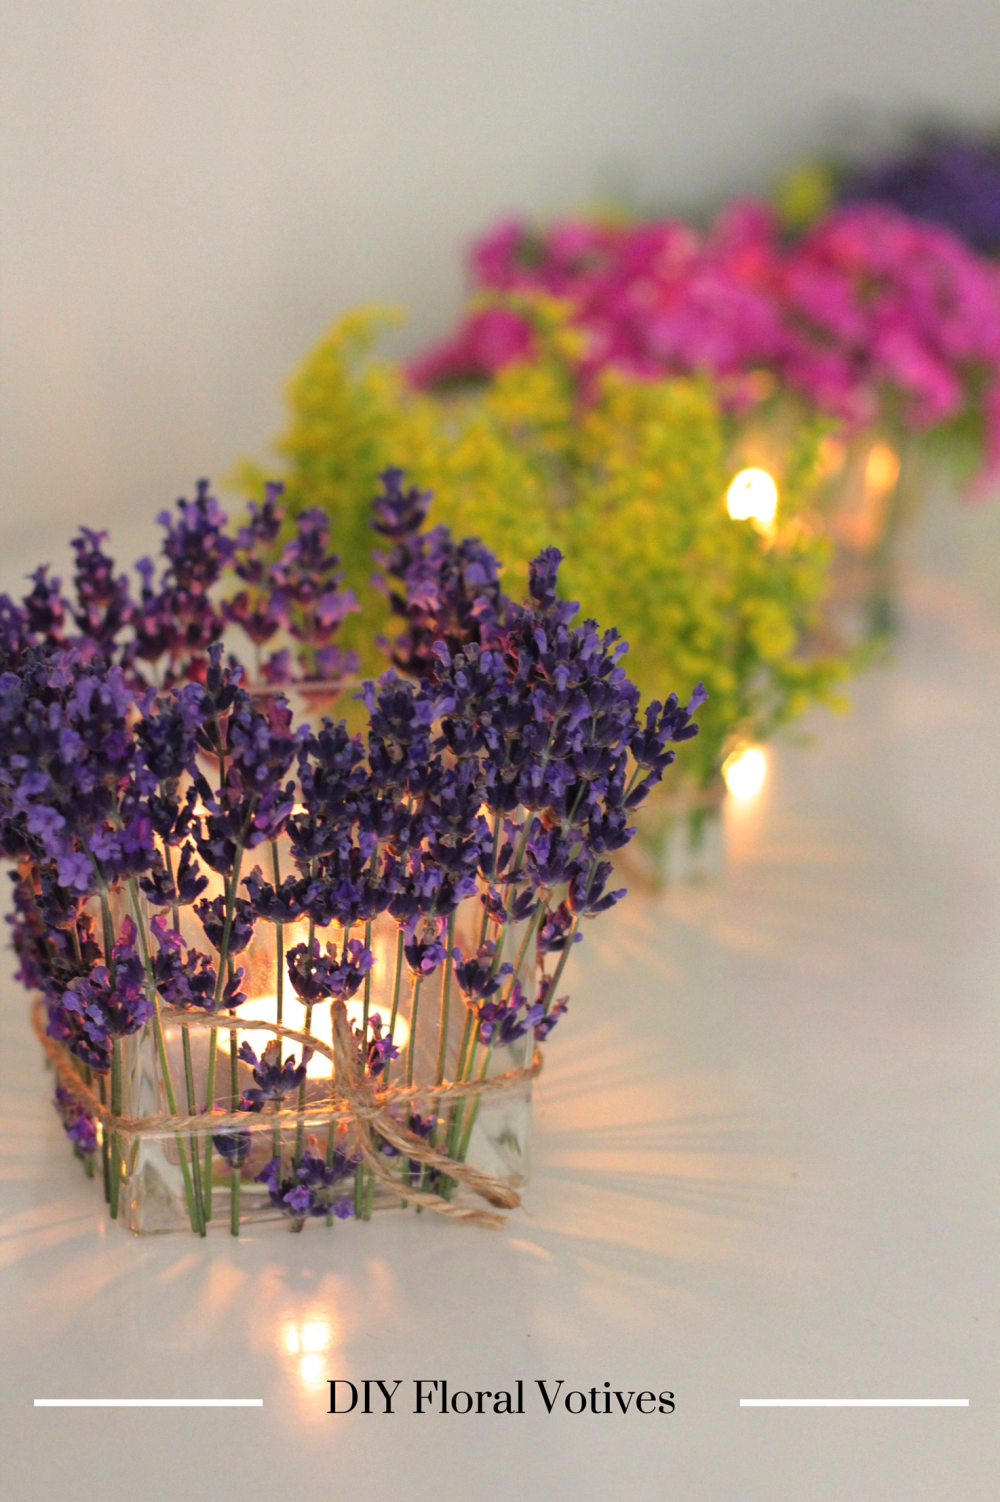 DIY Floral Votives I Adorned With Love